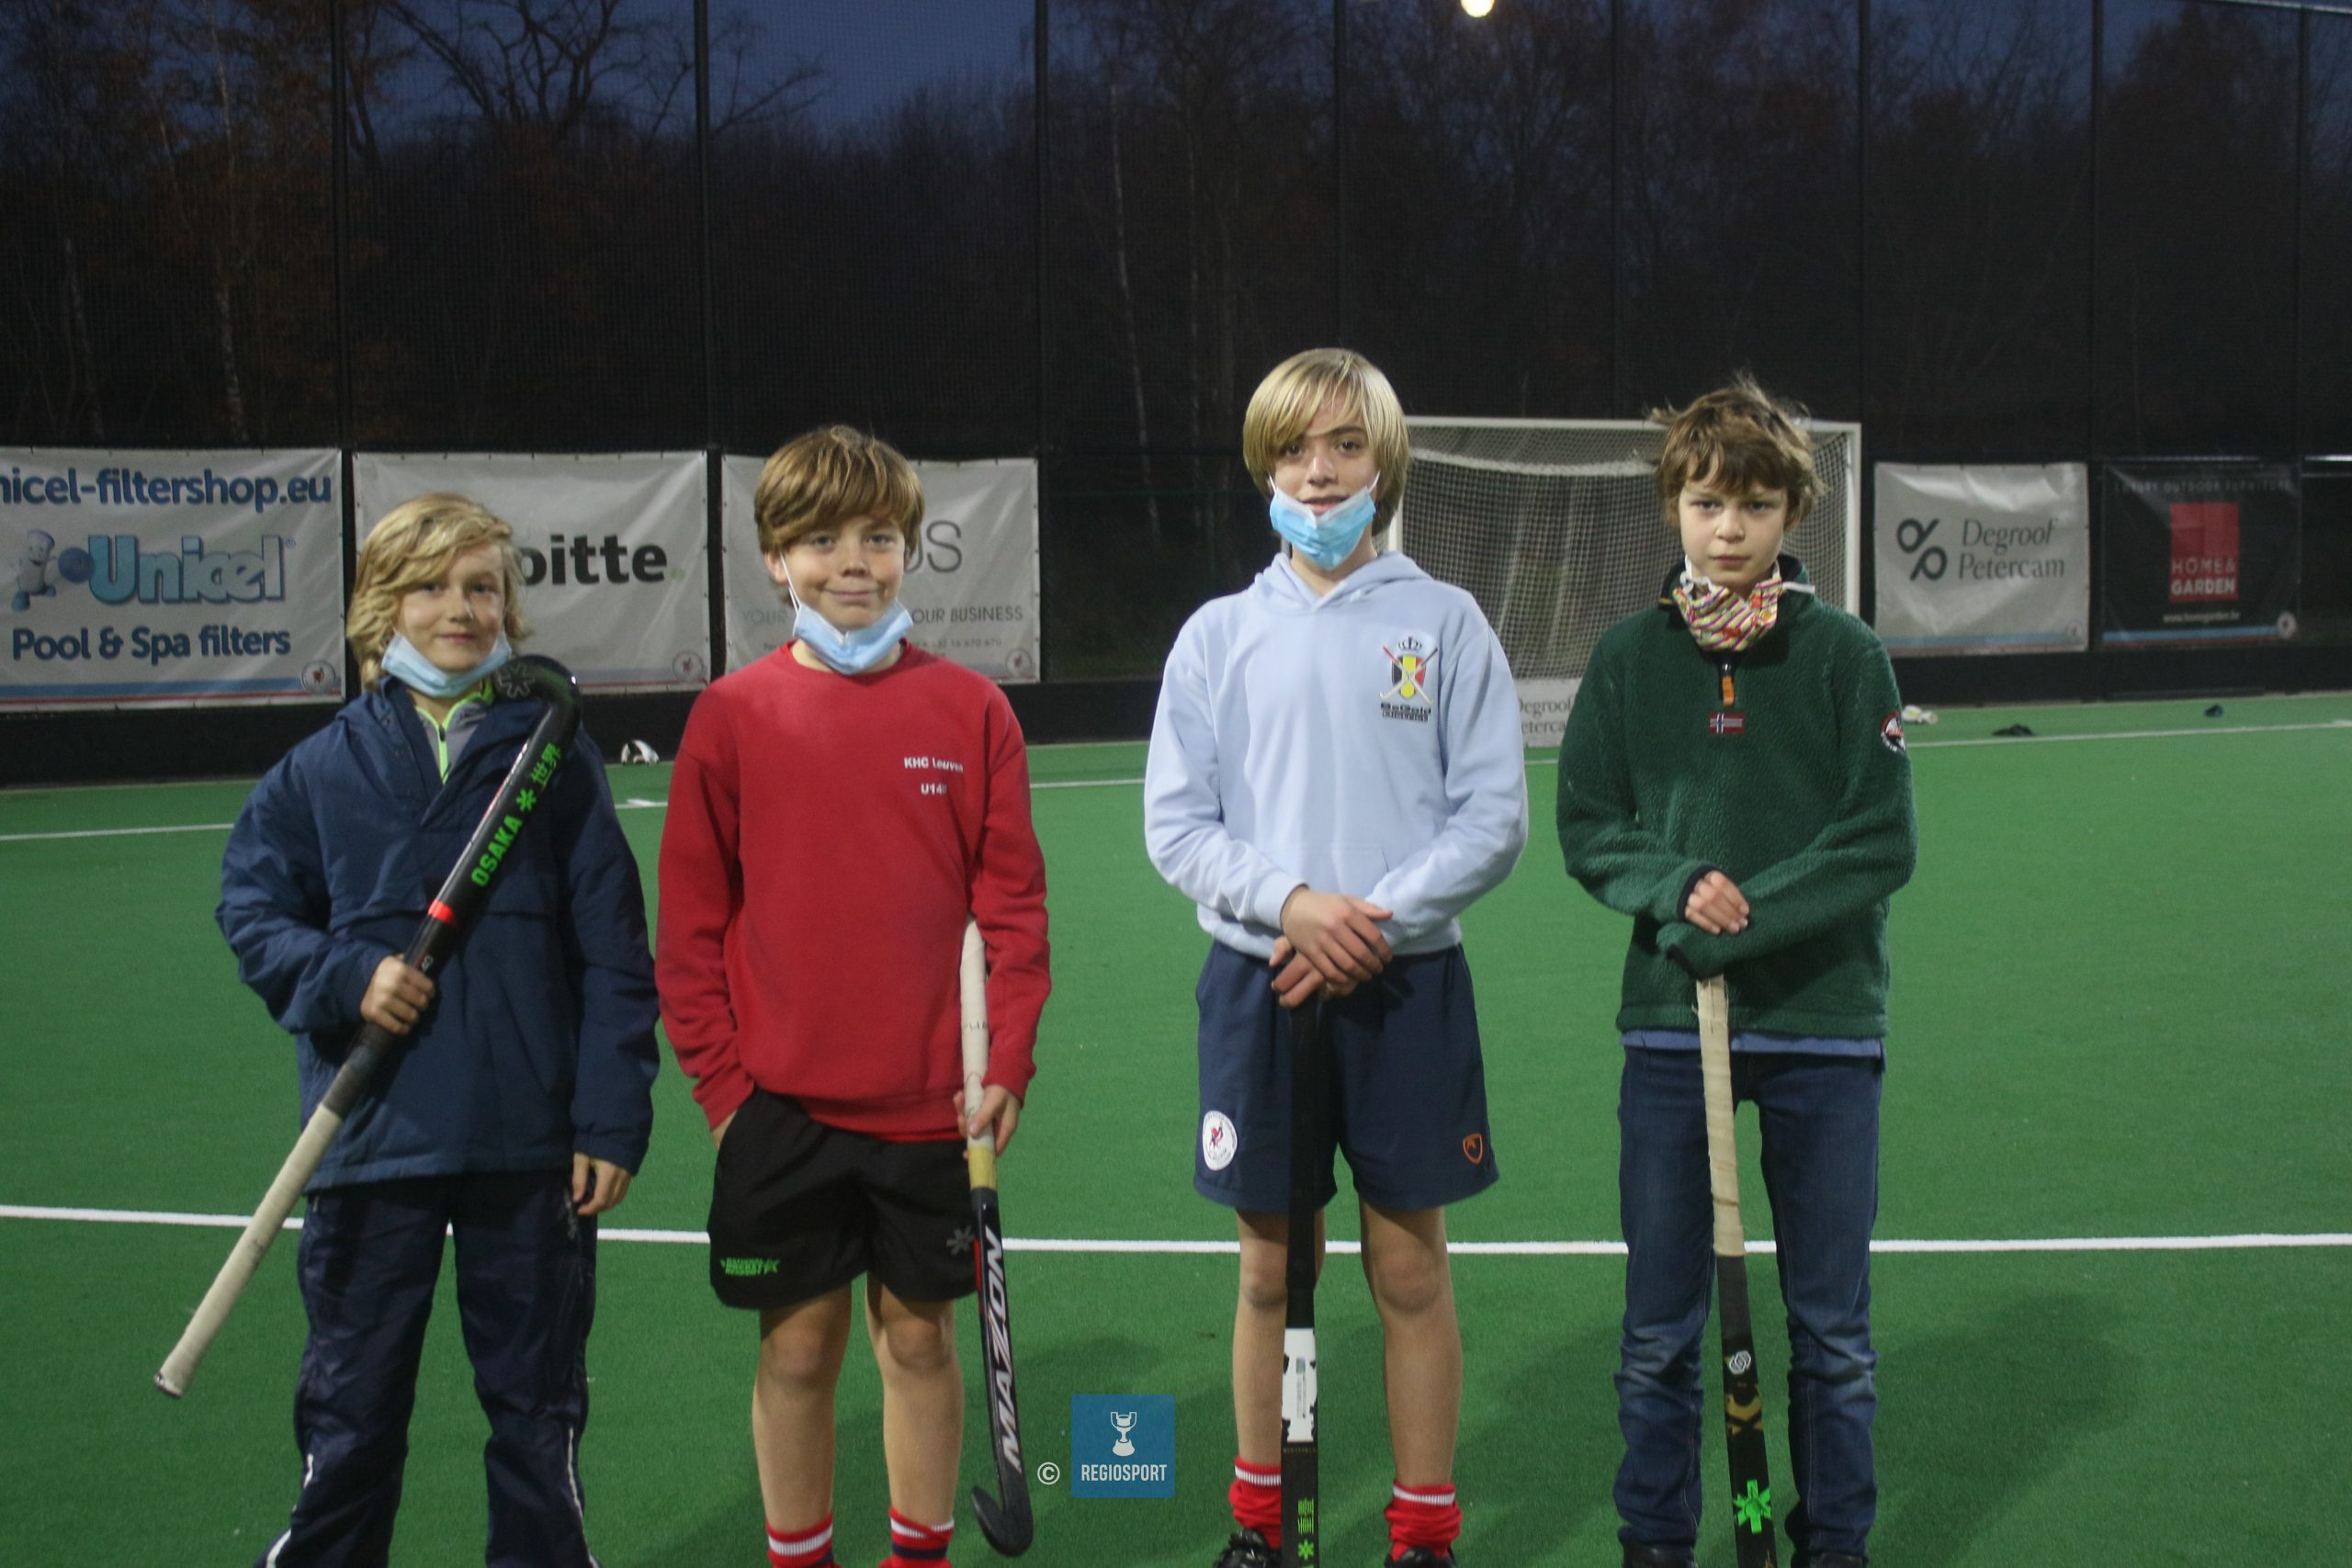 U14 boys KHC Leuven in the picture